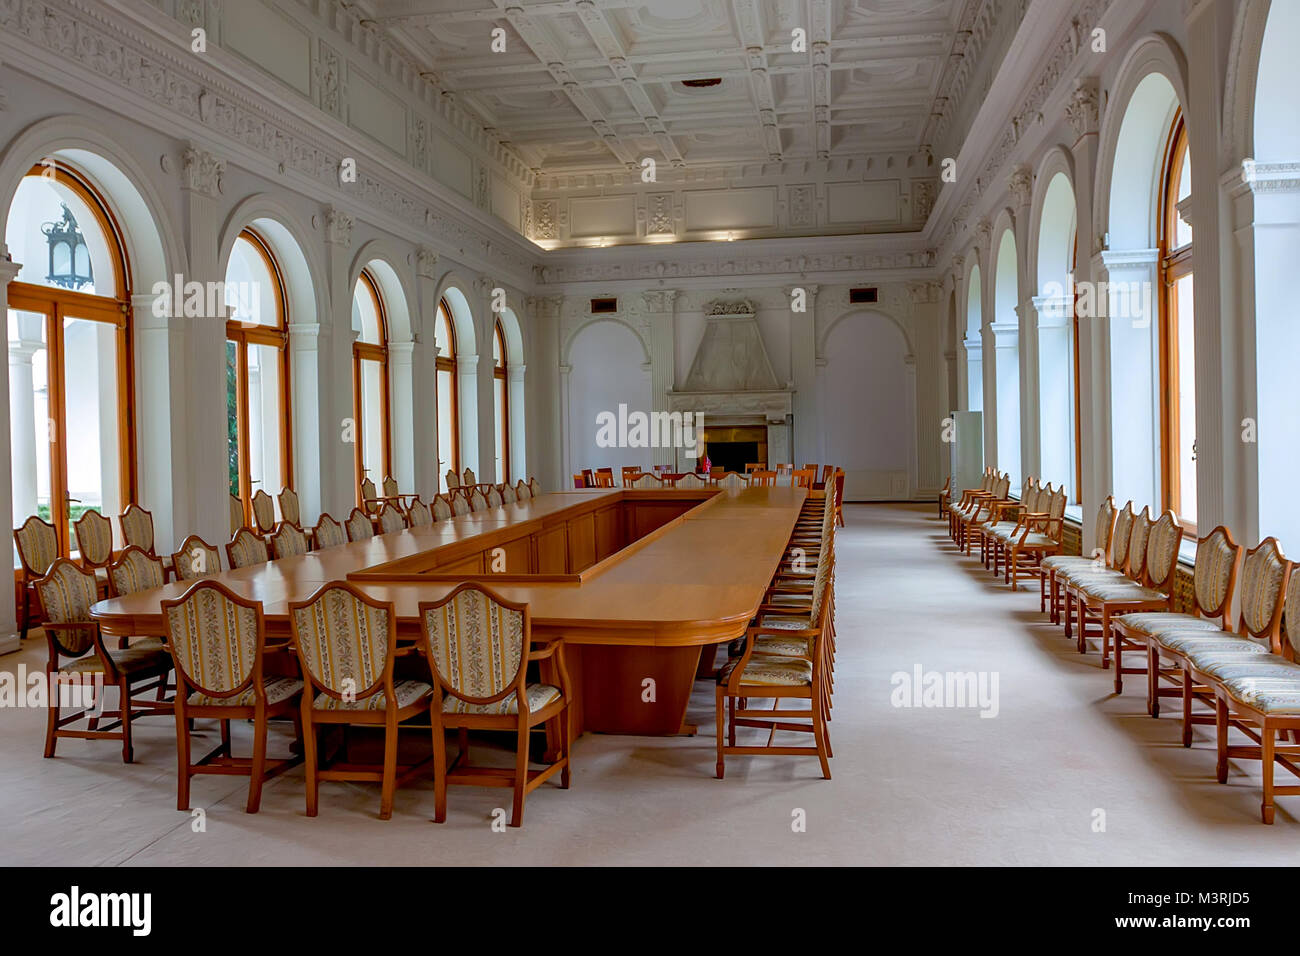 LIVADIA, RUSSIA - MARCH 21, 2011: interior of The White Hall in Livadia Palace - Stock Image